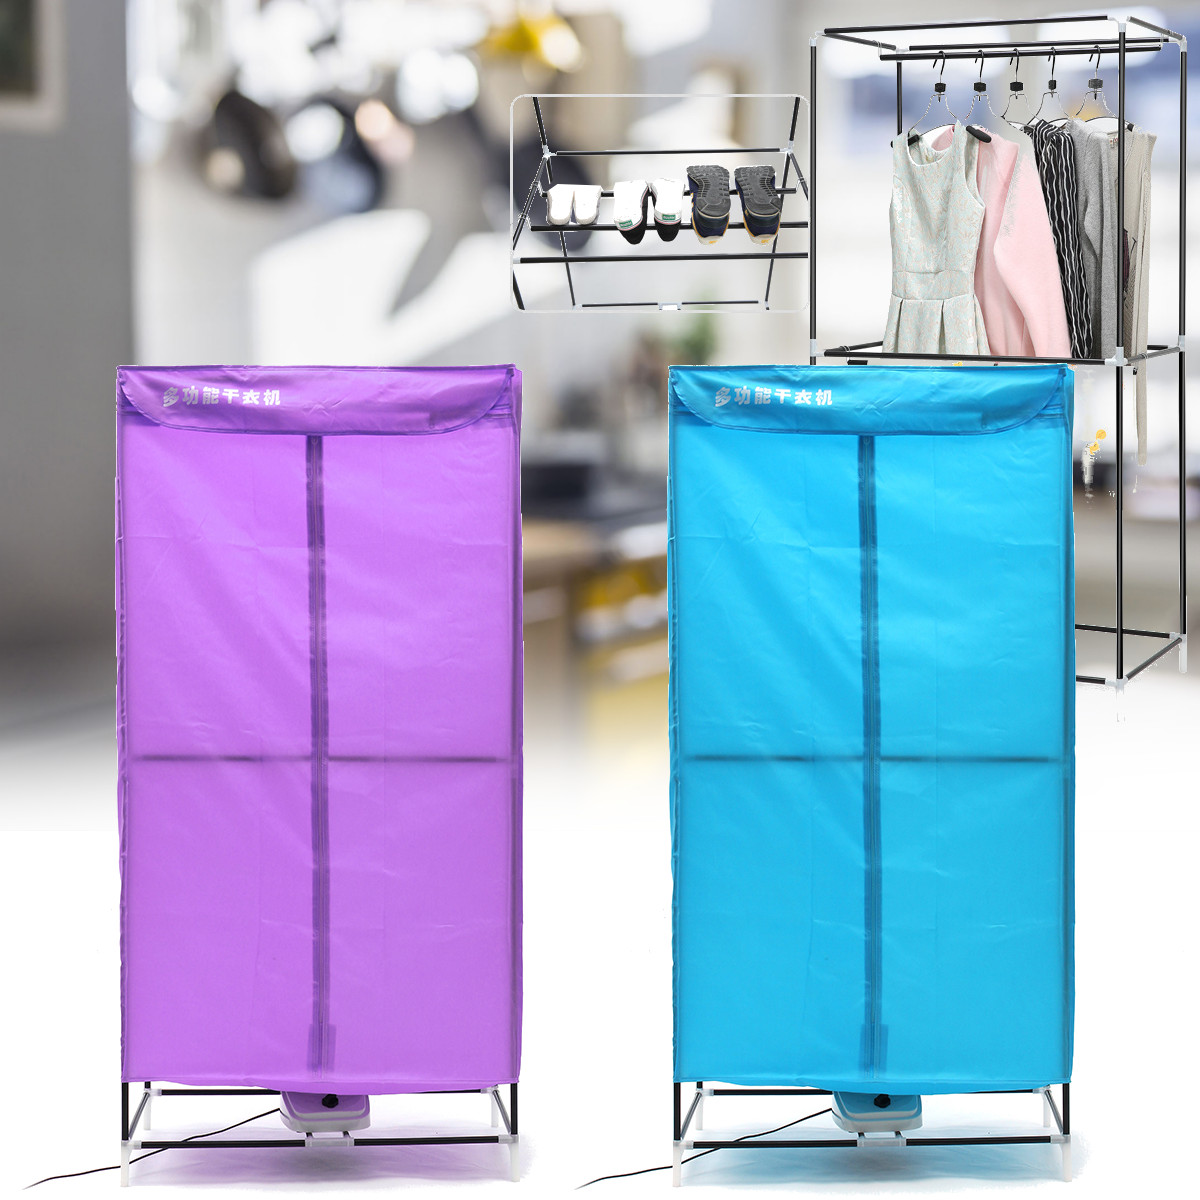 Portable Clothing Dryer Electric Laundry Energy Saving Drying Rack 220V